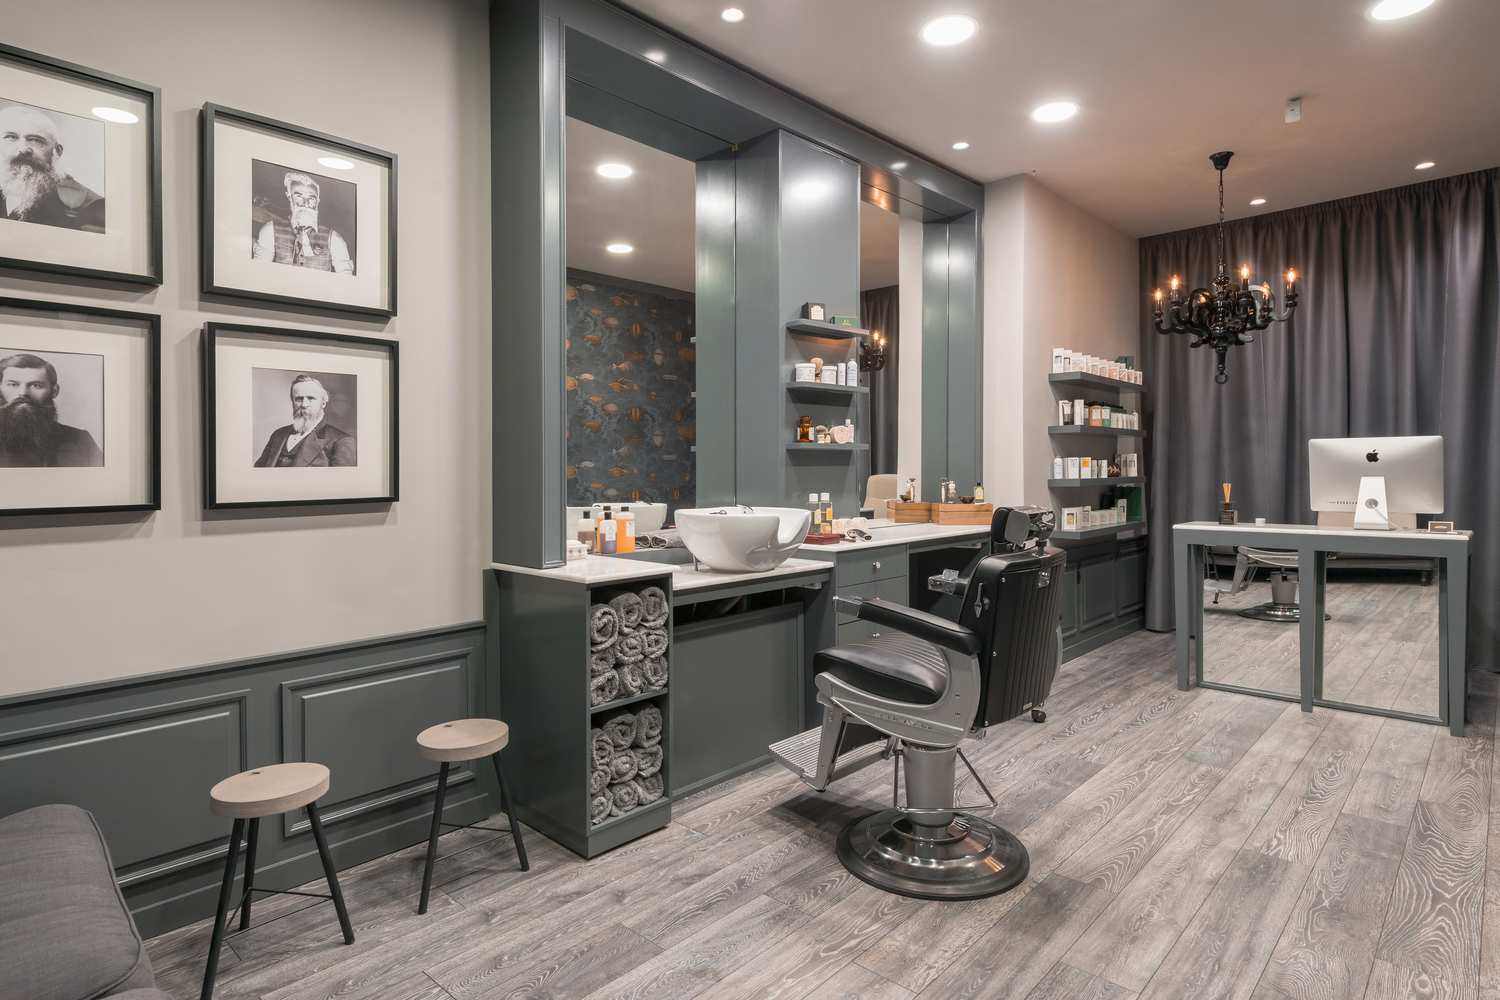 Barber Shop by Square Two - Trikala